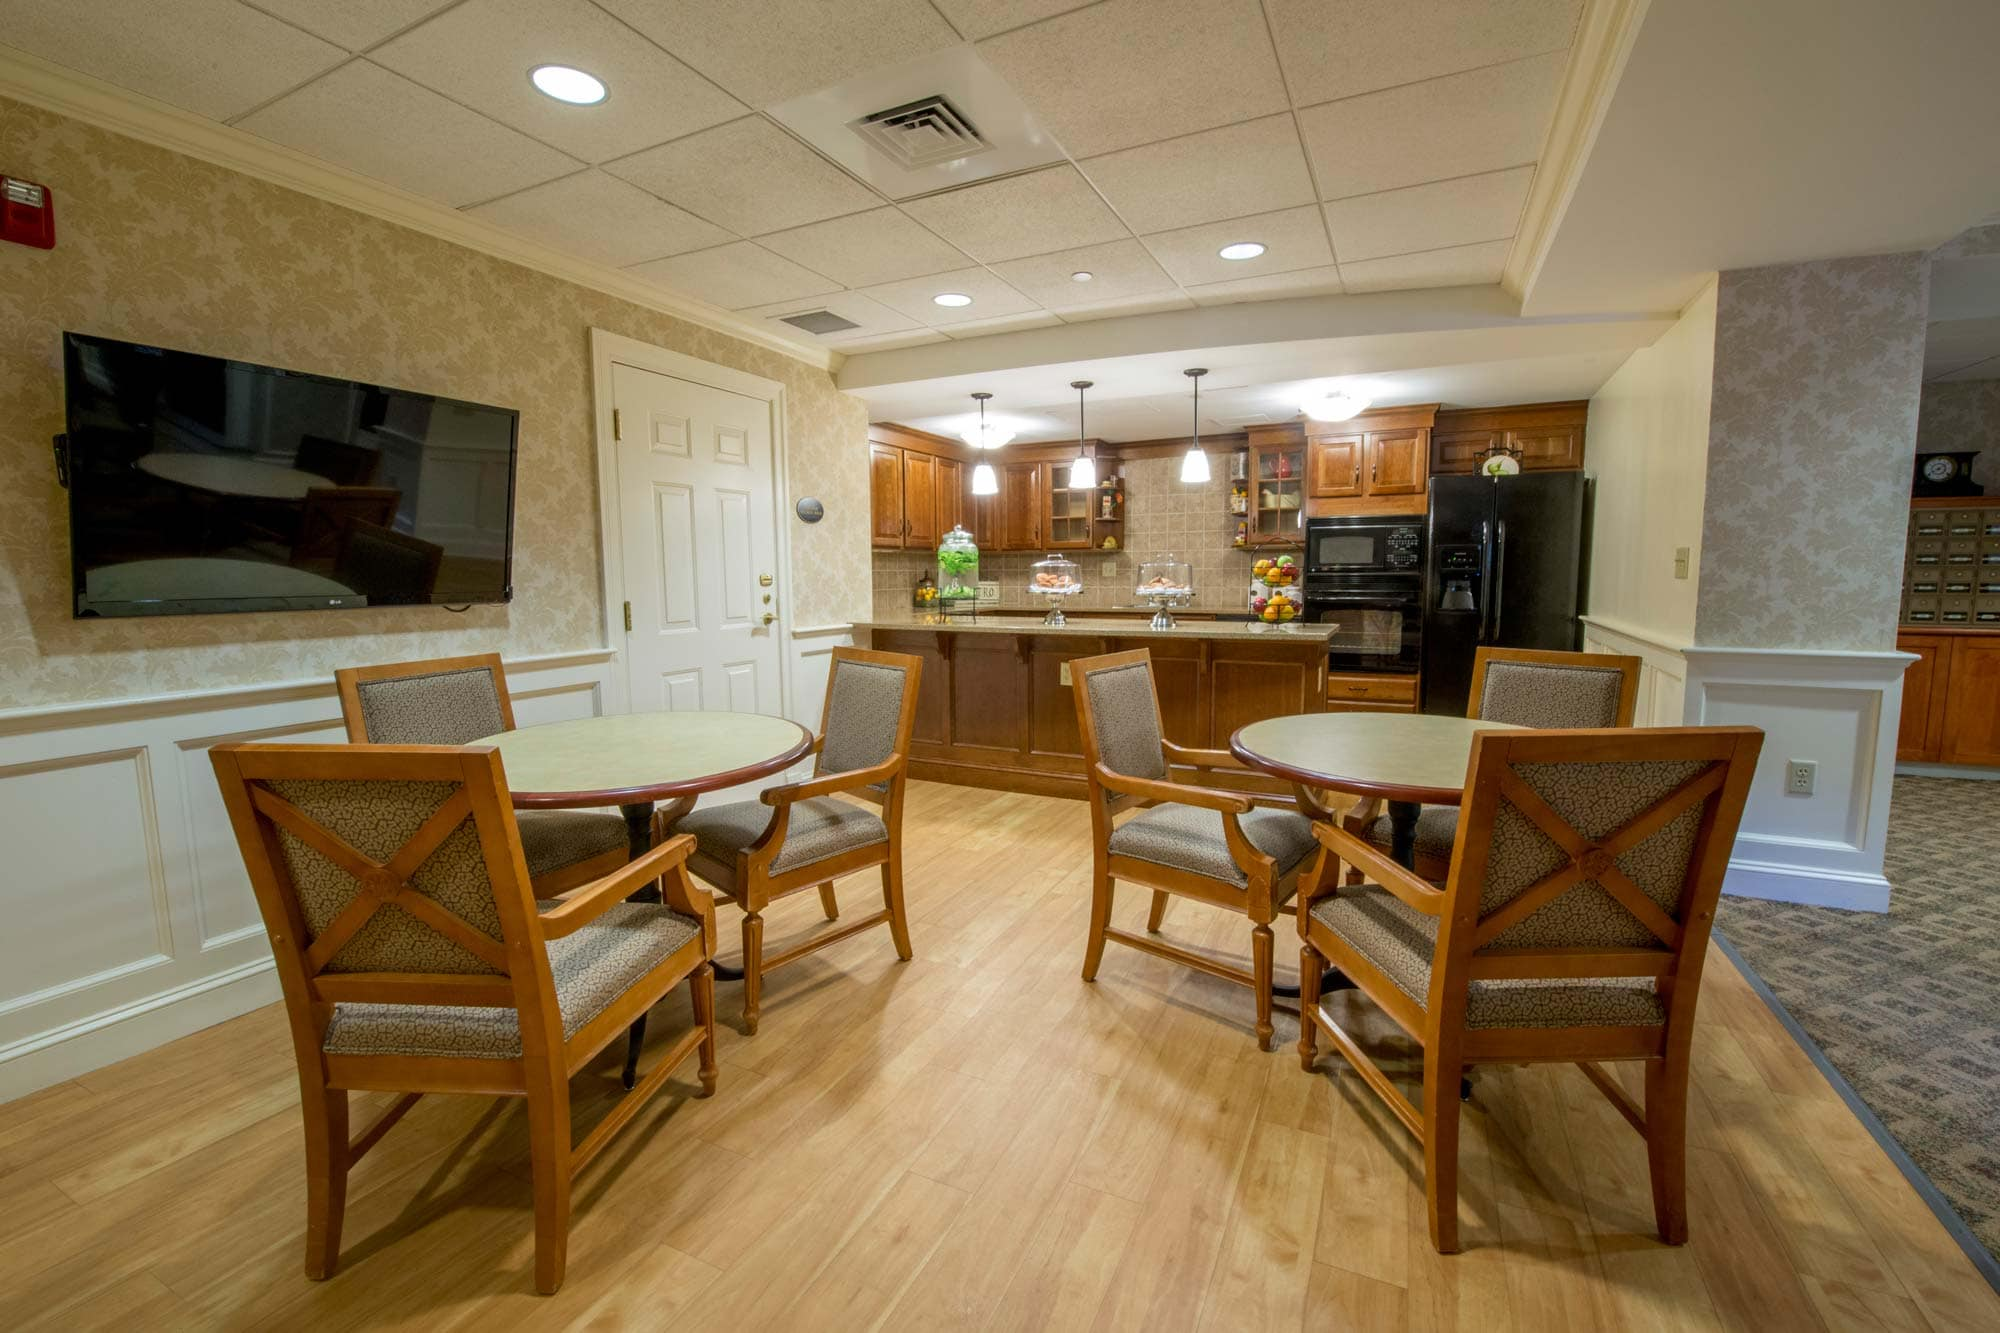 Seating in bistro cafe and kitchenette